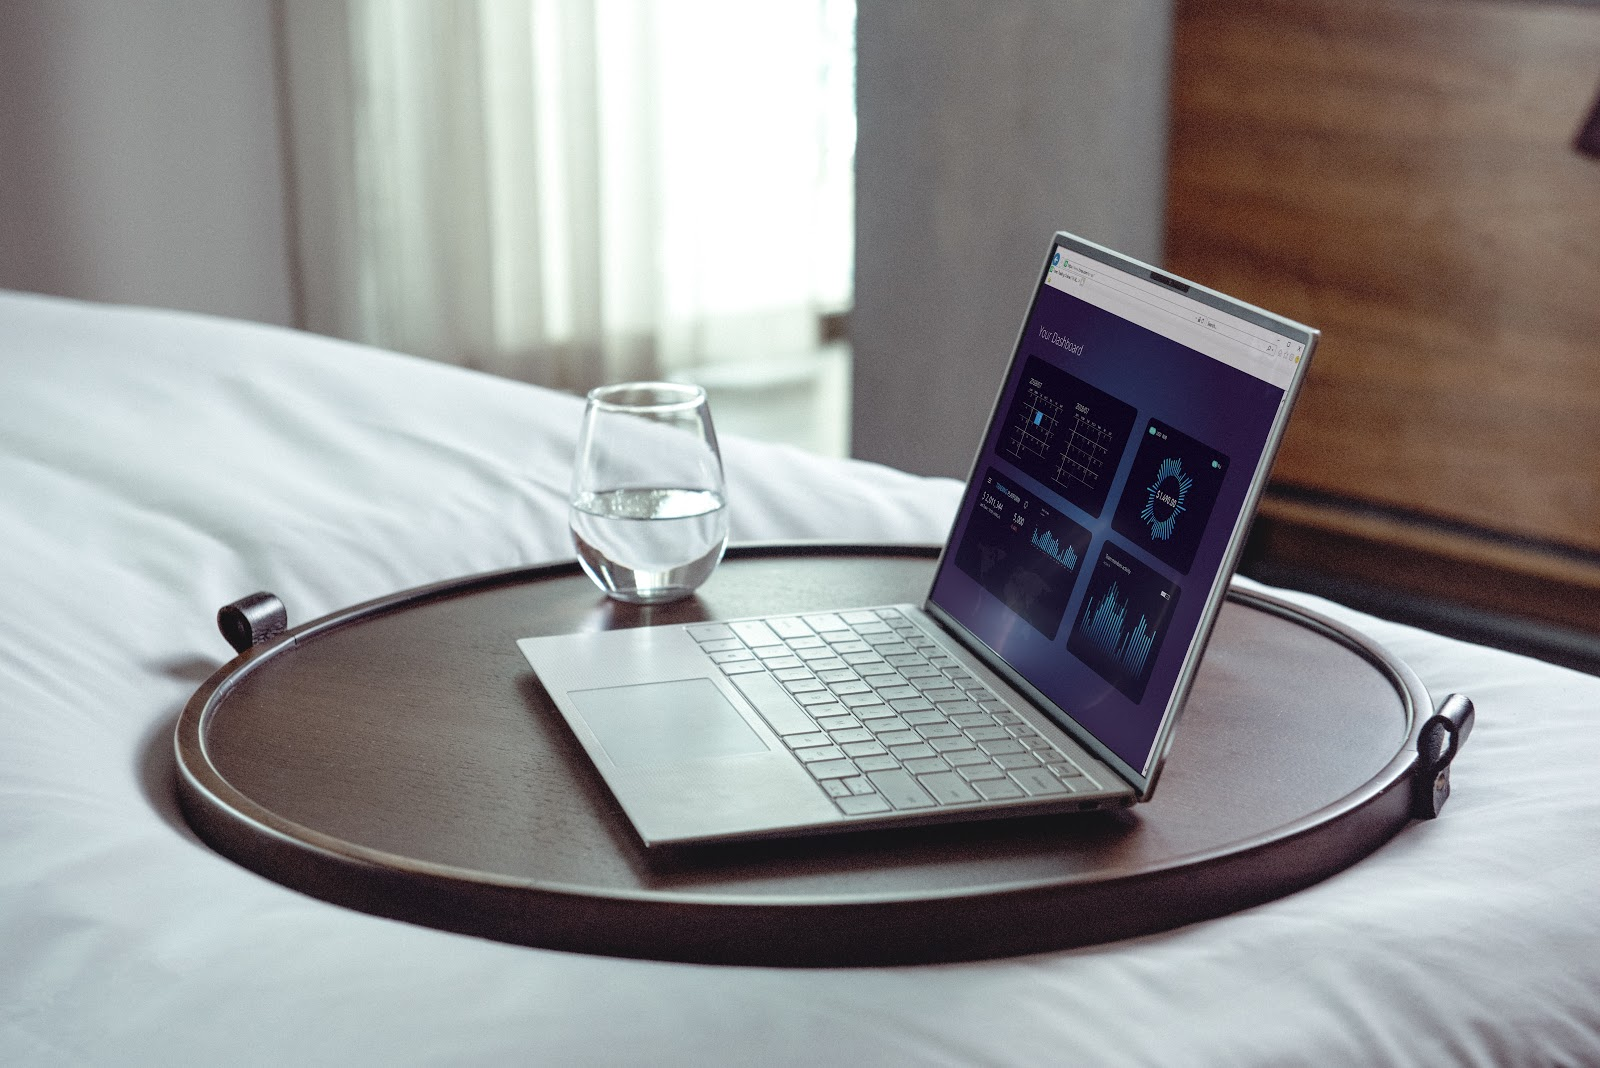 an open laptop on a tray next to a short glass of water